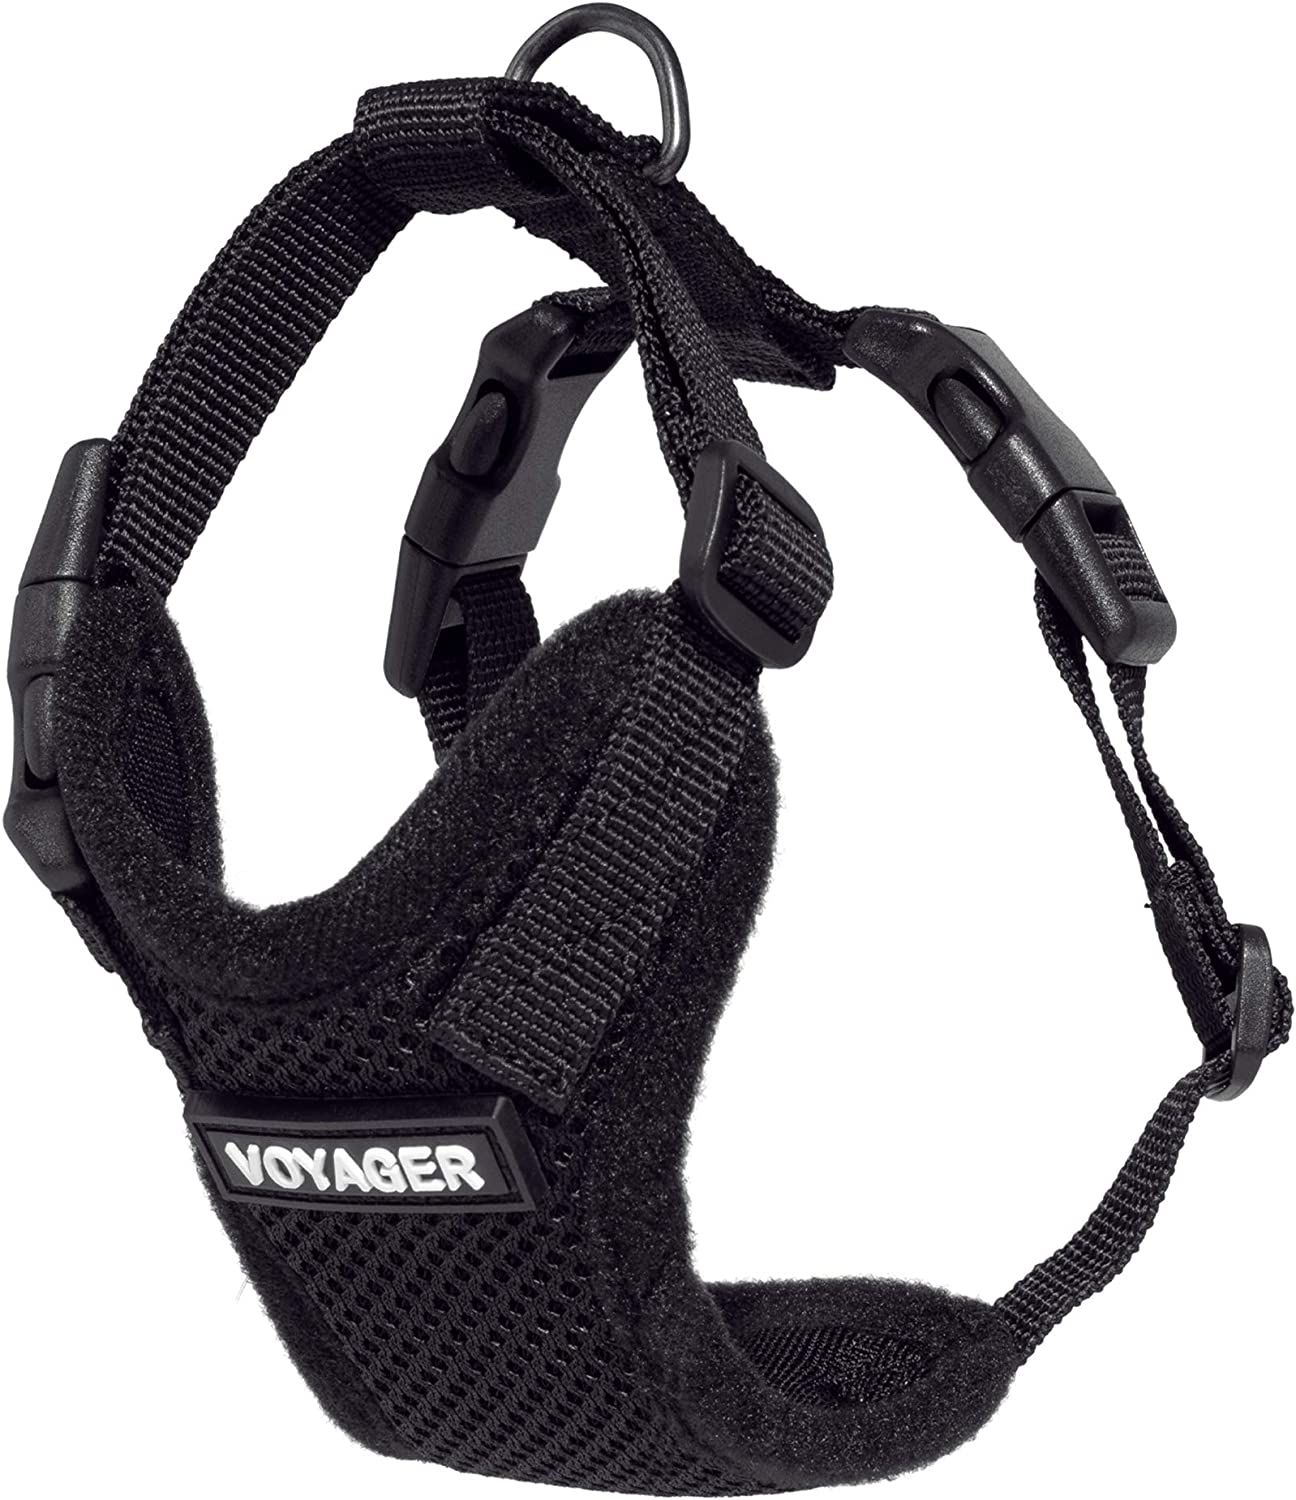 Voyager Step-in Lock Dog Harness